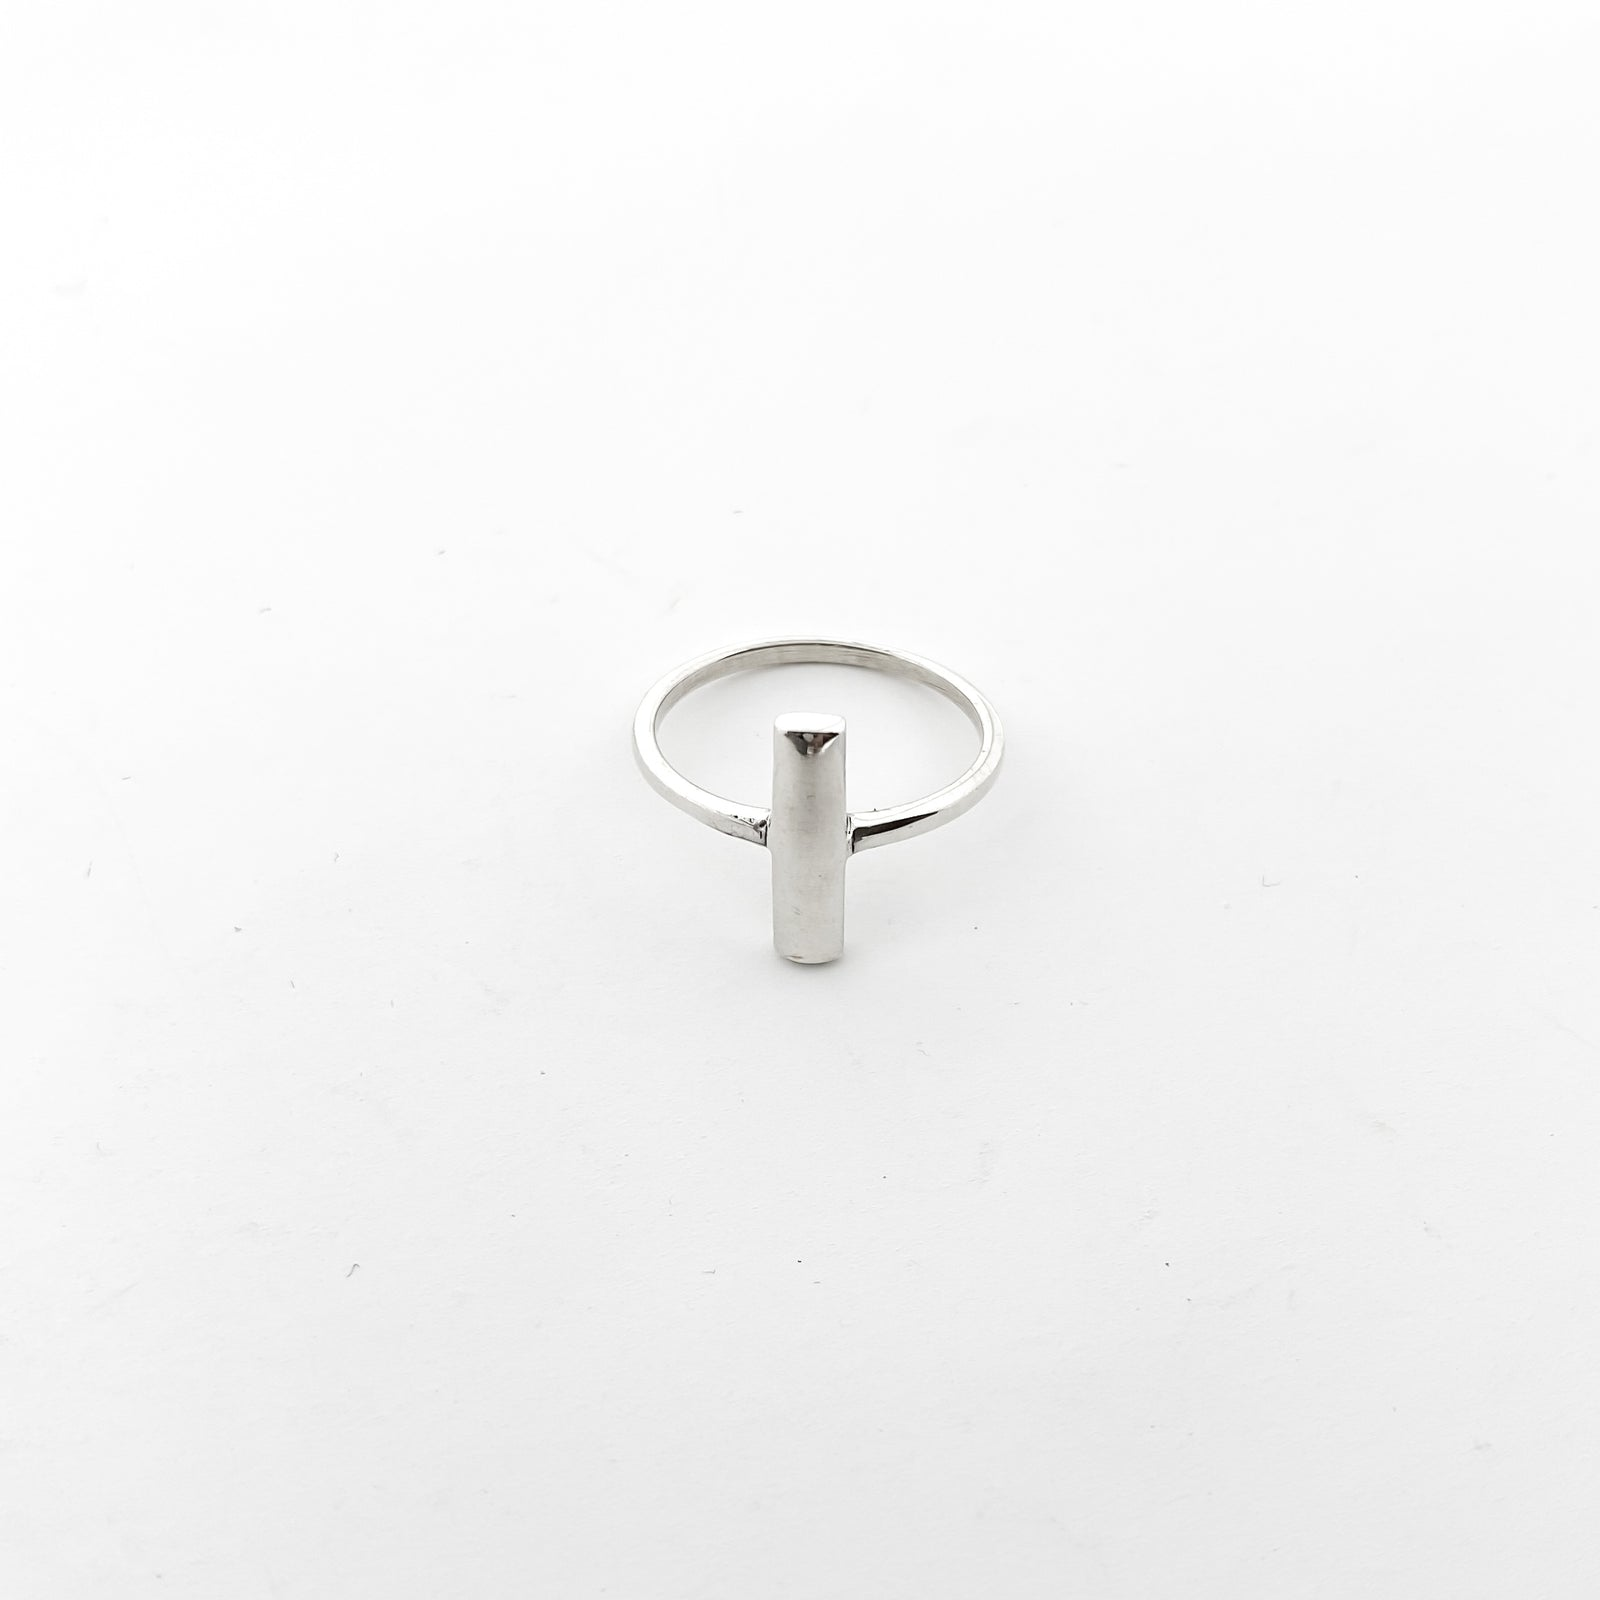 BAR RING | STERLING SILVER | SIZE OPTIONS